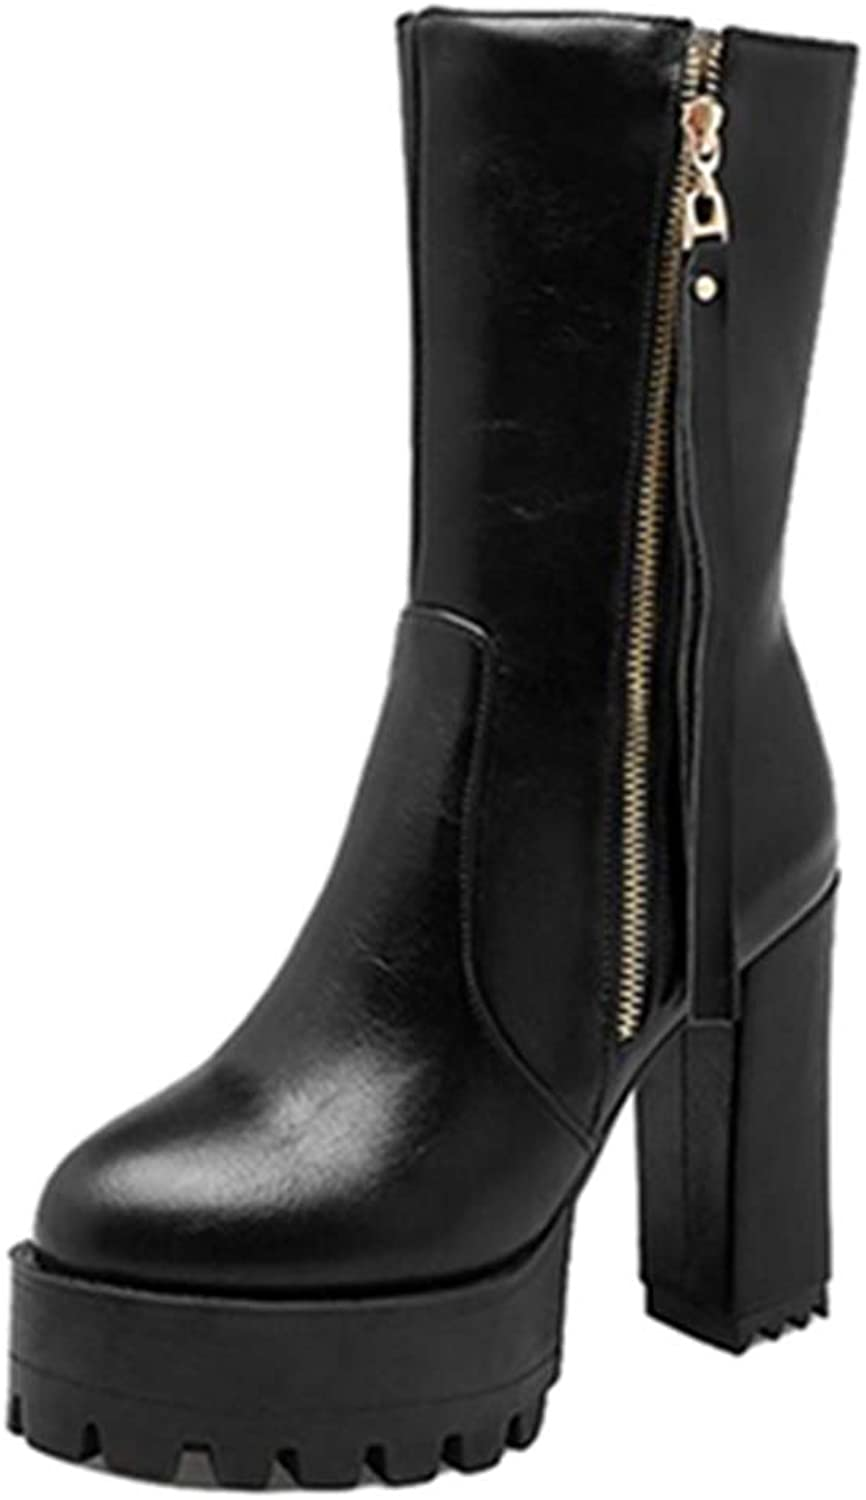 SJJH Women High Heel Martin Mid Calf Boots